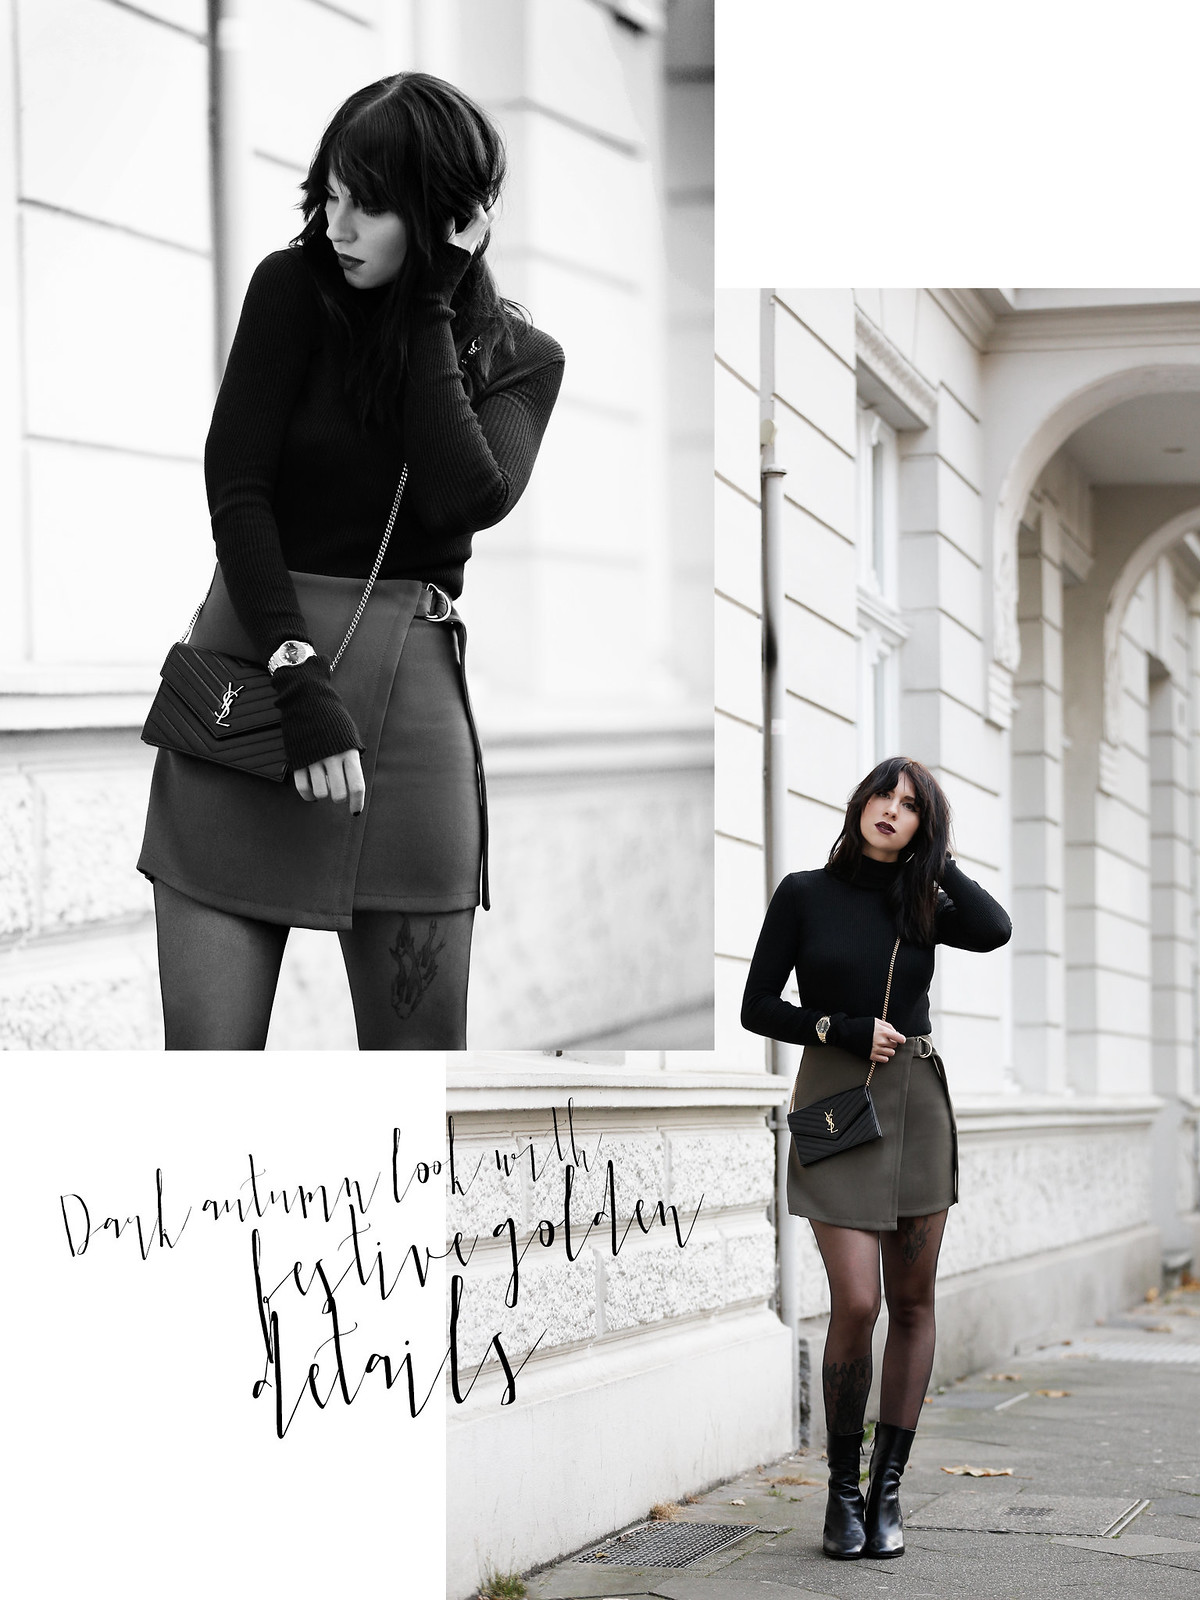 ootd outfit look magazine style mag fashion fashionblogger autumn gothic look black lips dark turtleneck golden watch ysl saint laurent paris bag mini skirt legs boots bangs brunette parisienne modeblogger düsseldorf berlin cats & dogs ricarda schernus 5